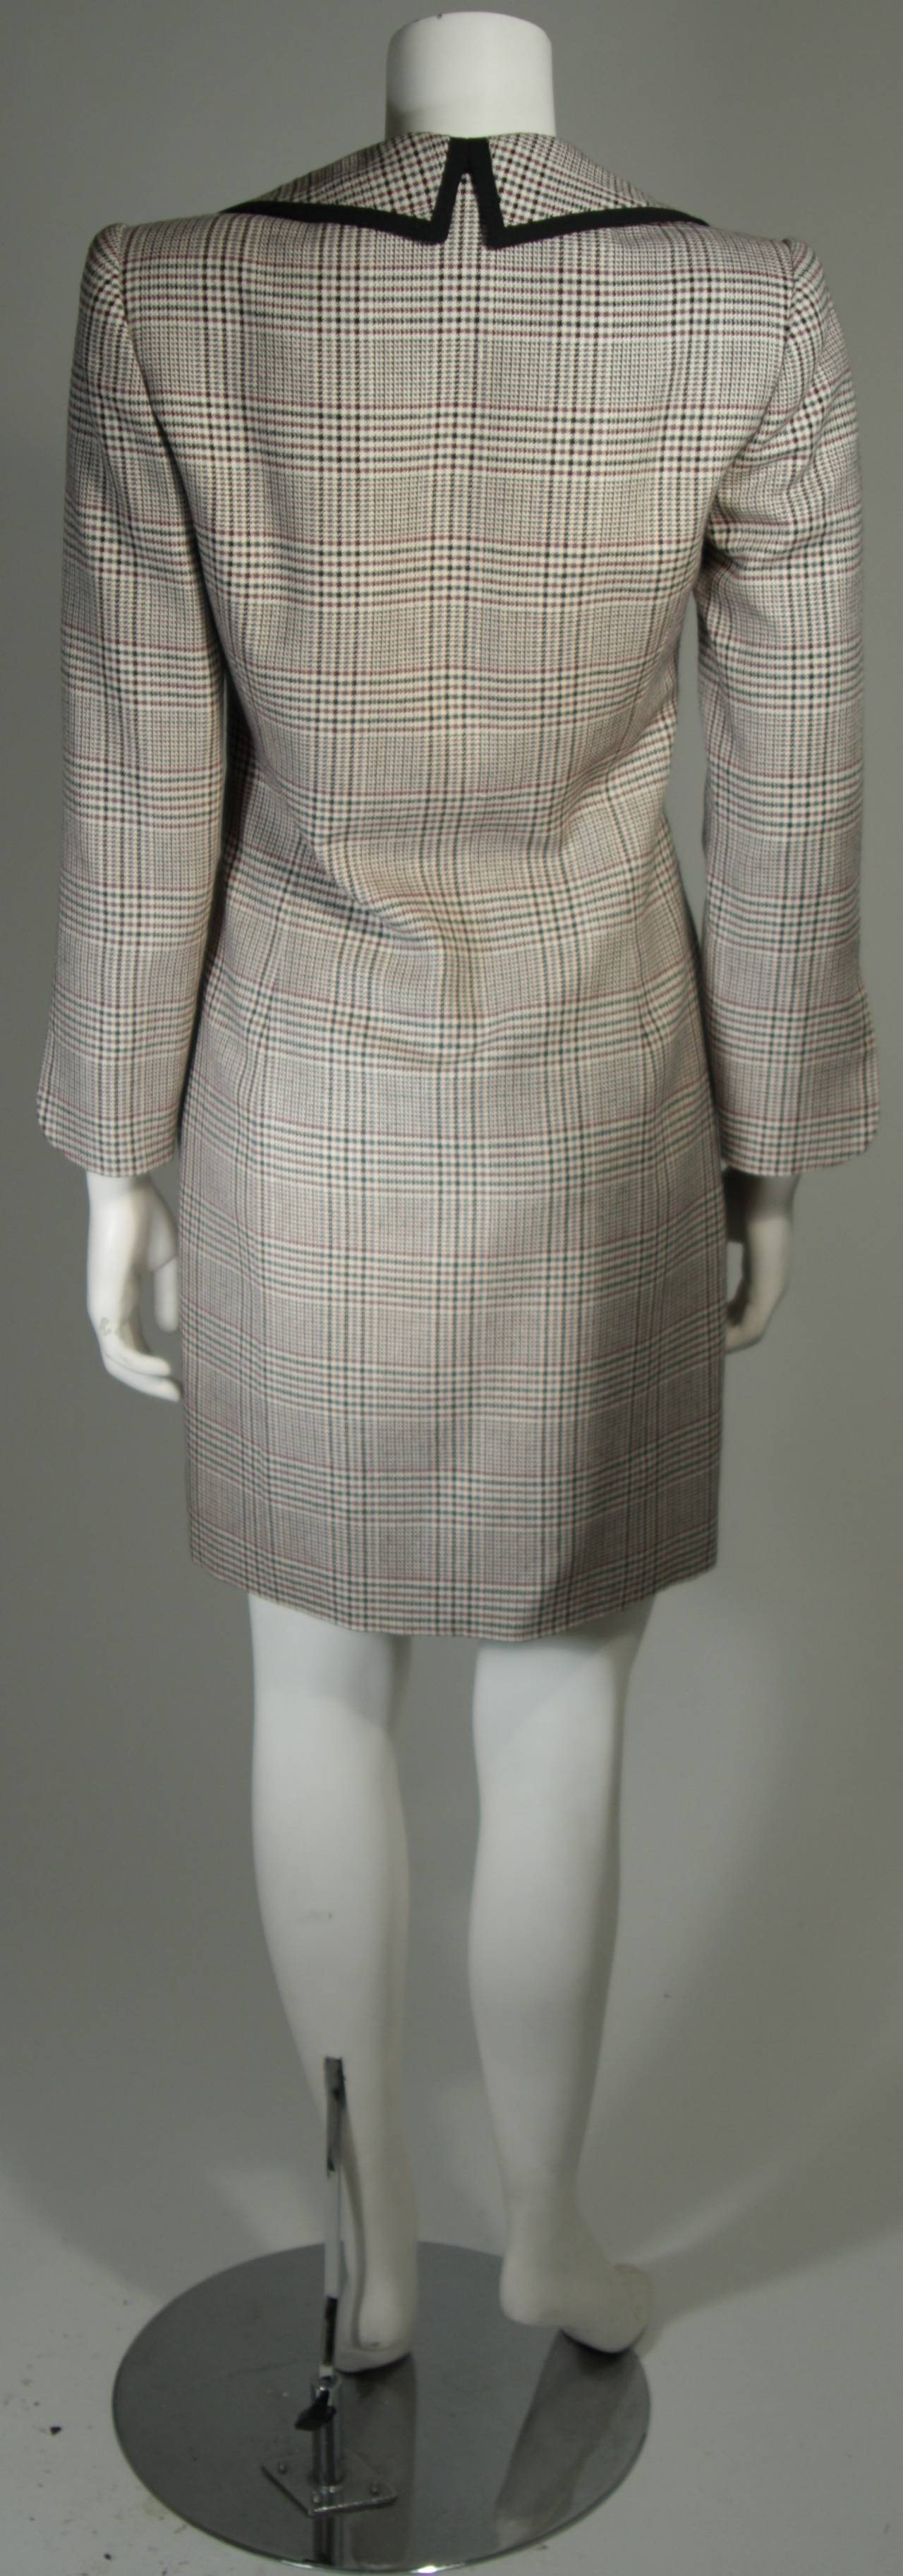 Galanos Couture Maroon Houndstooth Dress With Black Trim